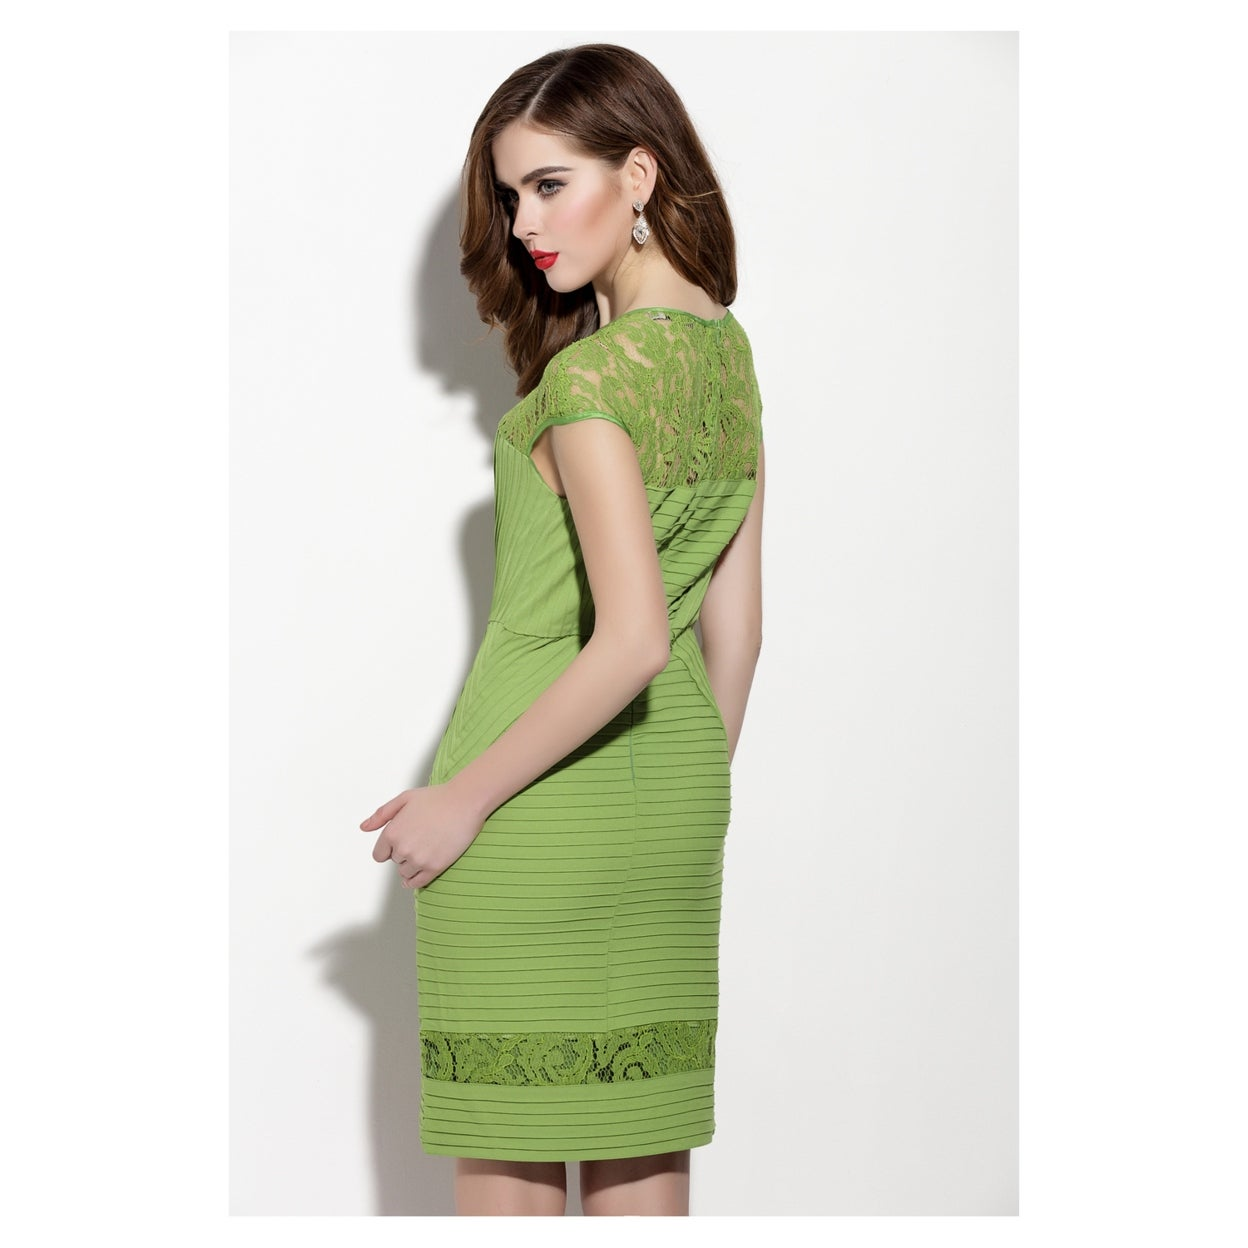 f744b52c27a Shop Green Lace Illusion Neckline Sheath Dress With Cap Sleeve - On Sale -  Free Shipping Today - Overstock - 27073500